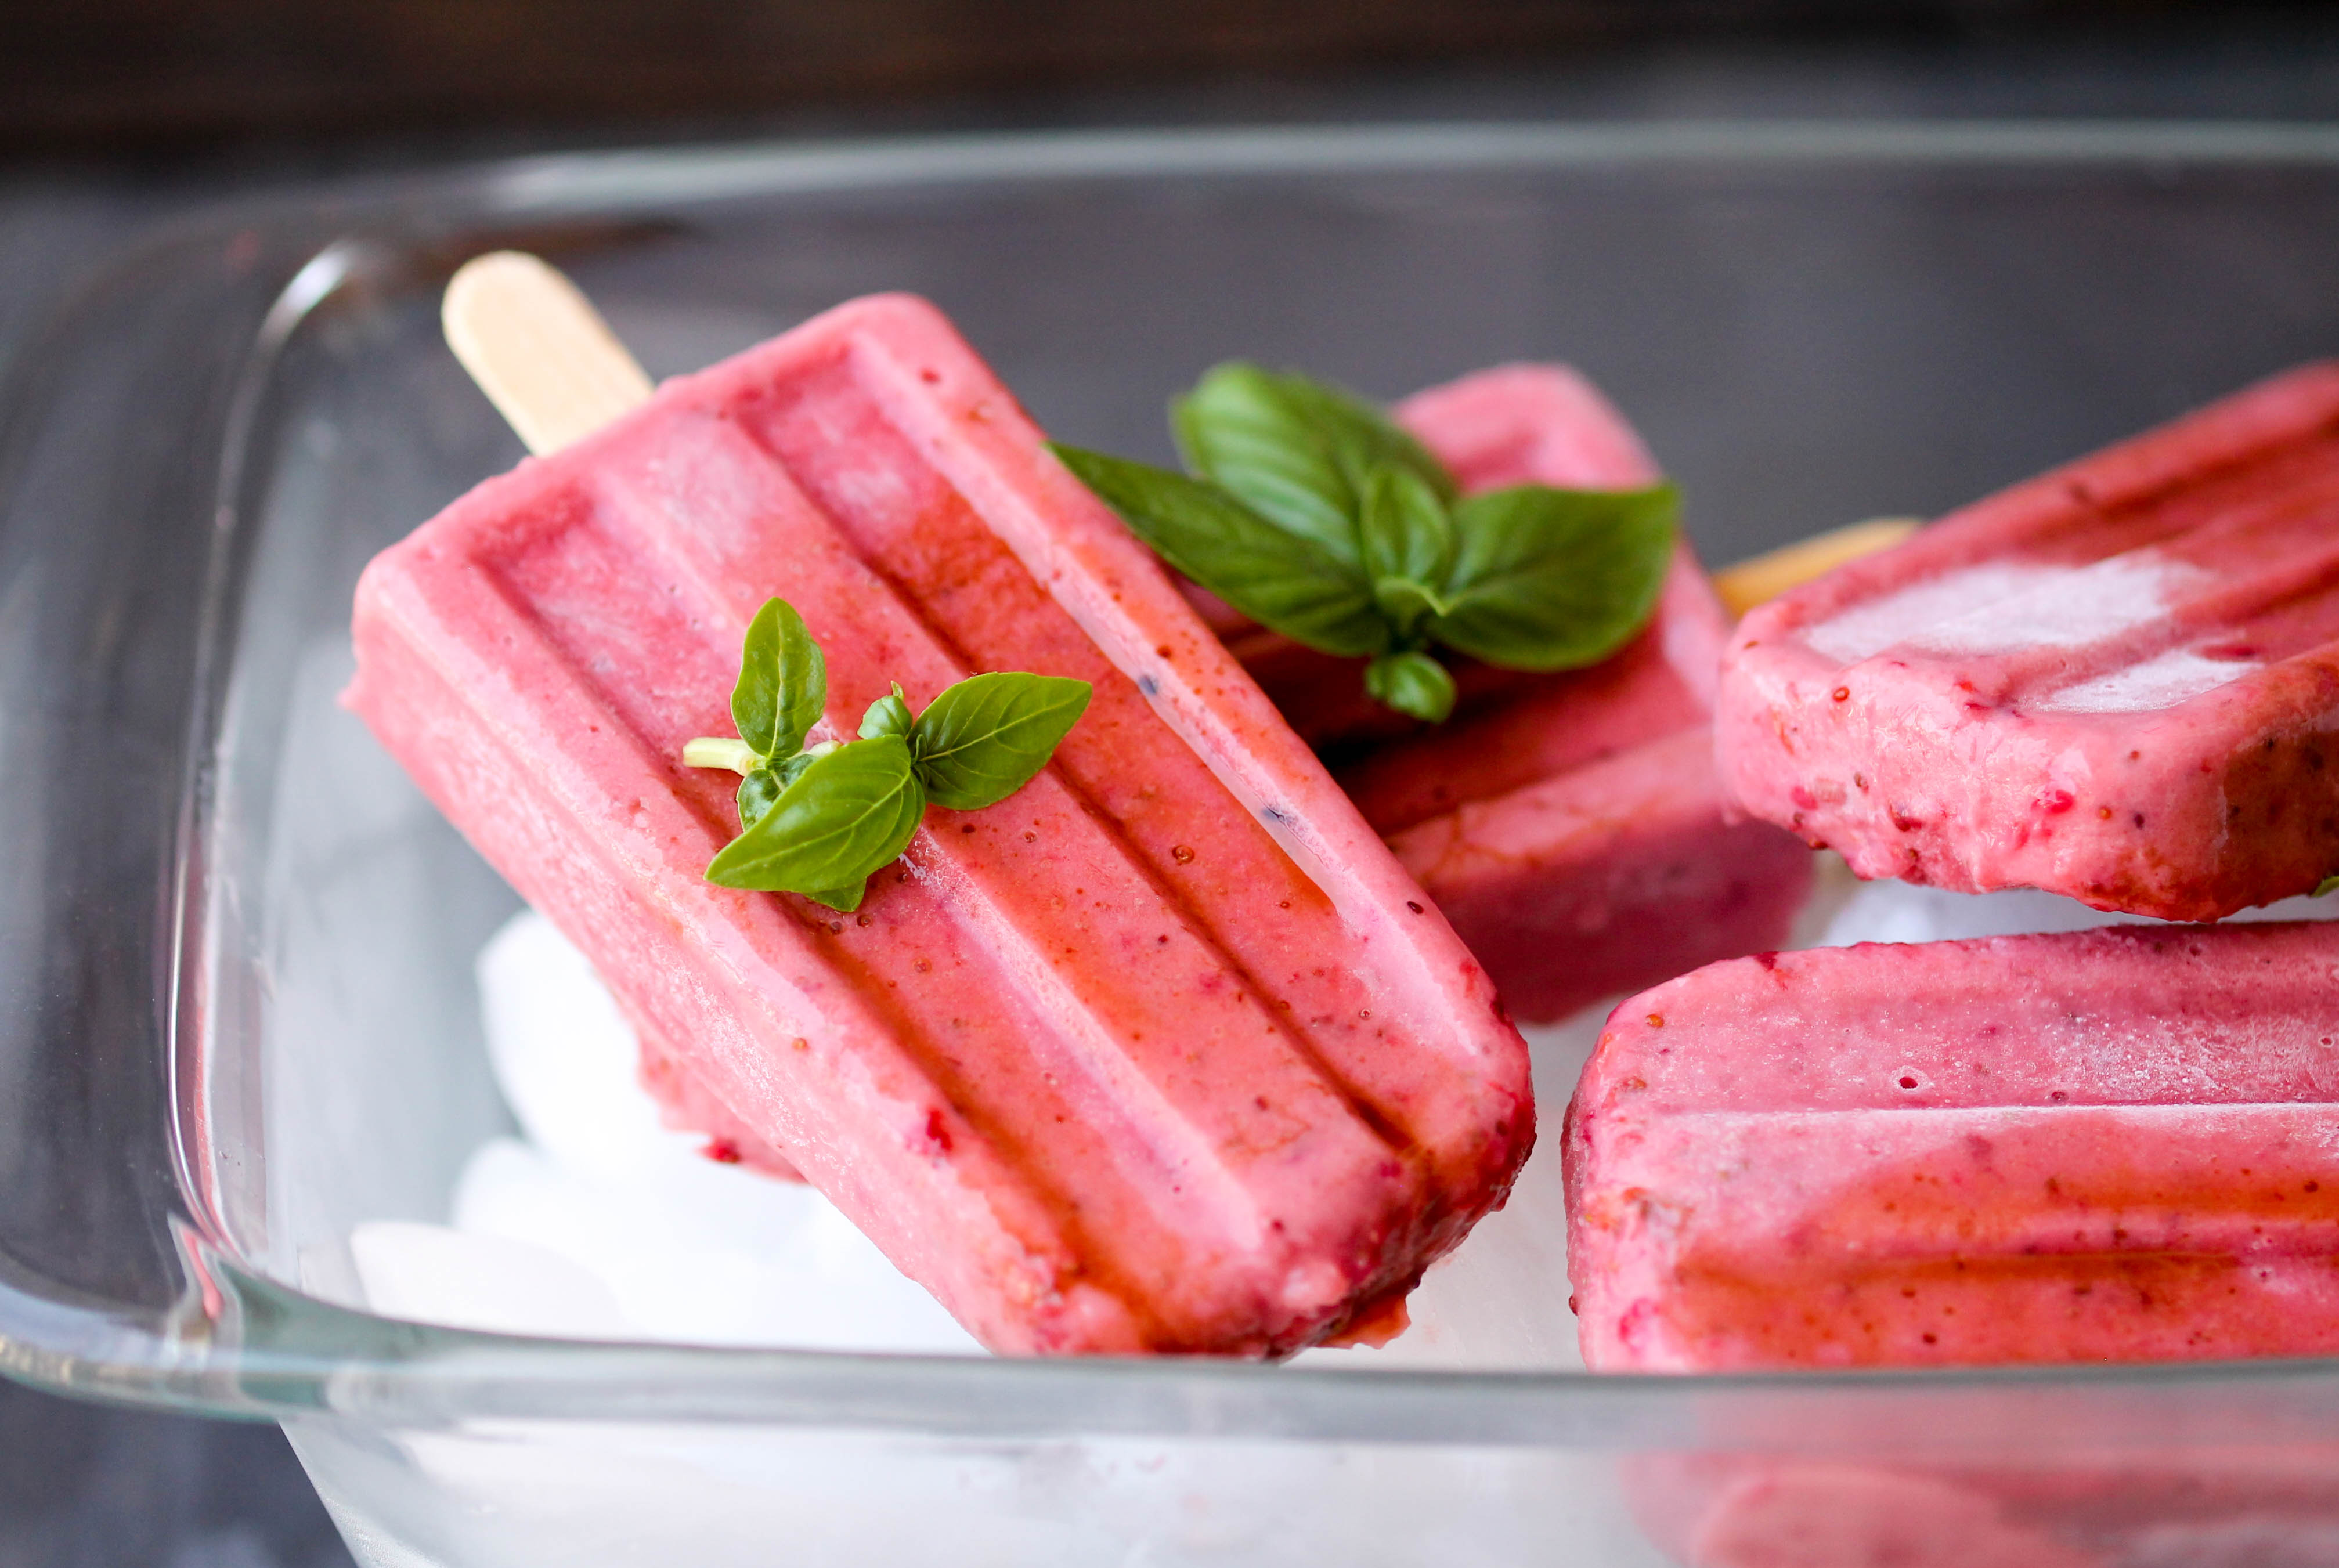 Balsamic Roasted Strawberry Popsicles